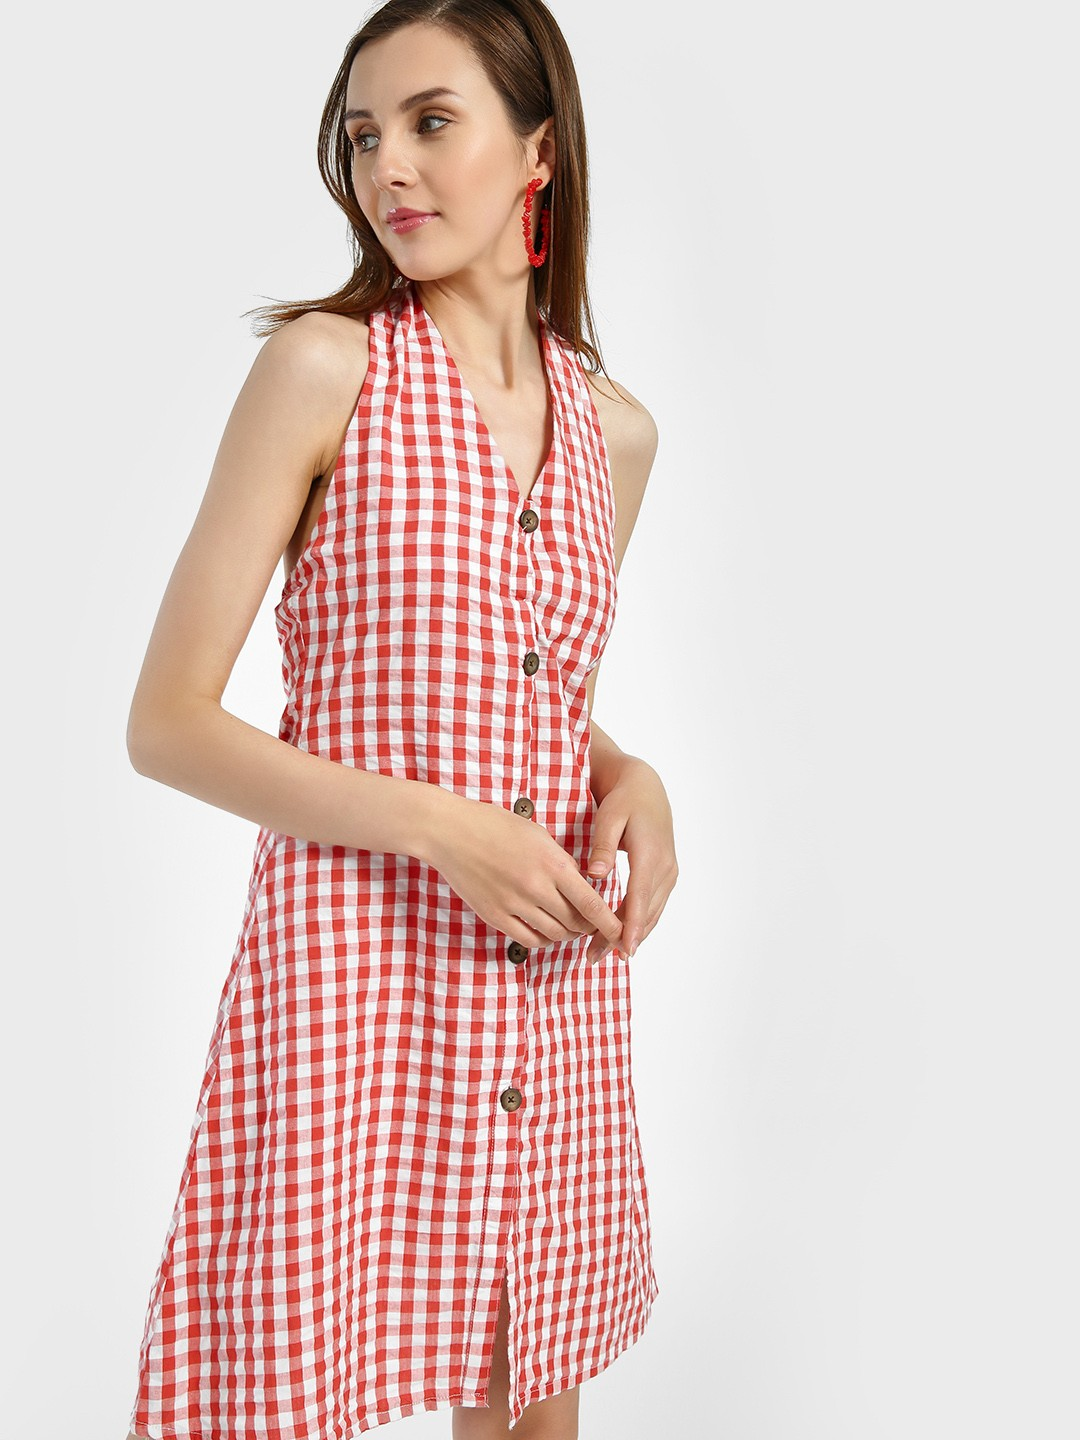 Sbuys Multi Halter Neck Gingham Check Shift Dress 1